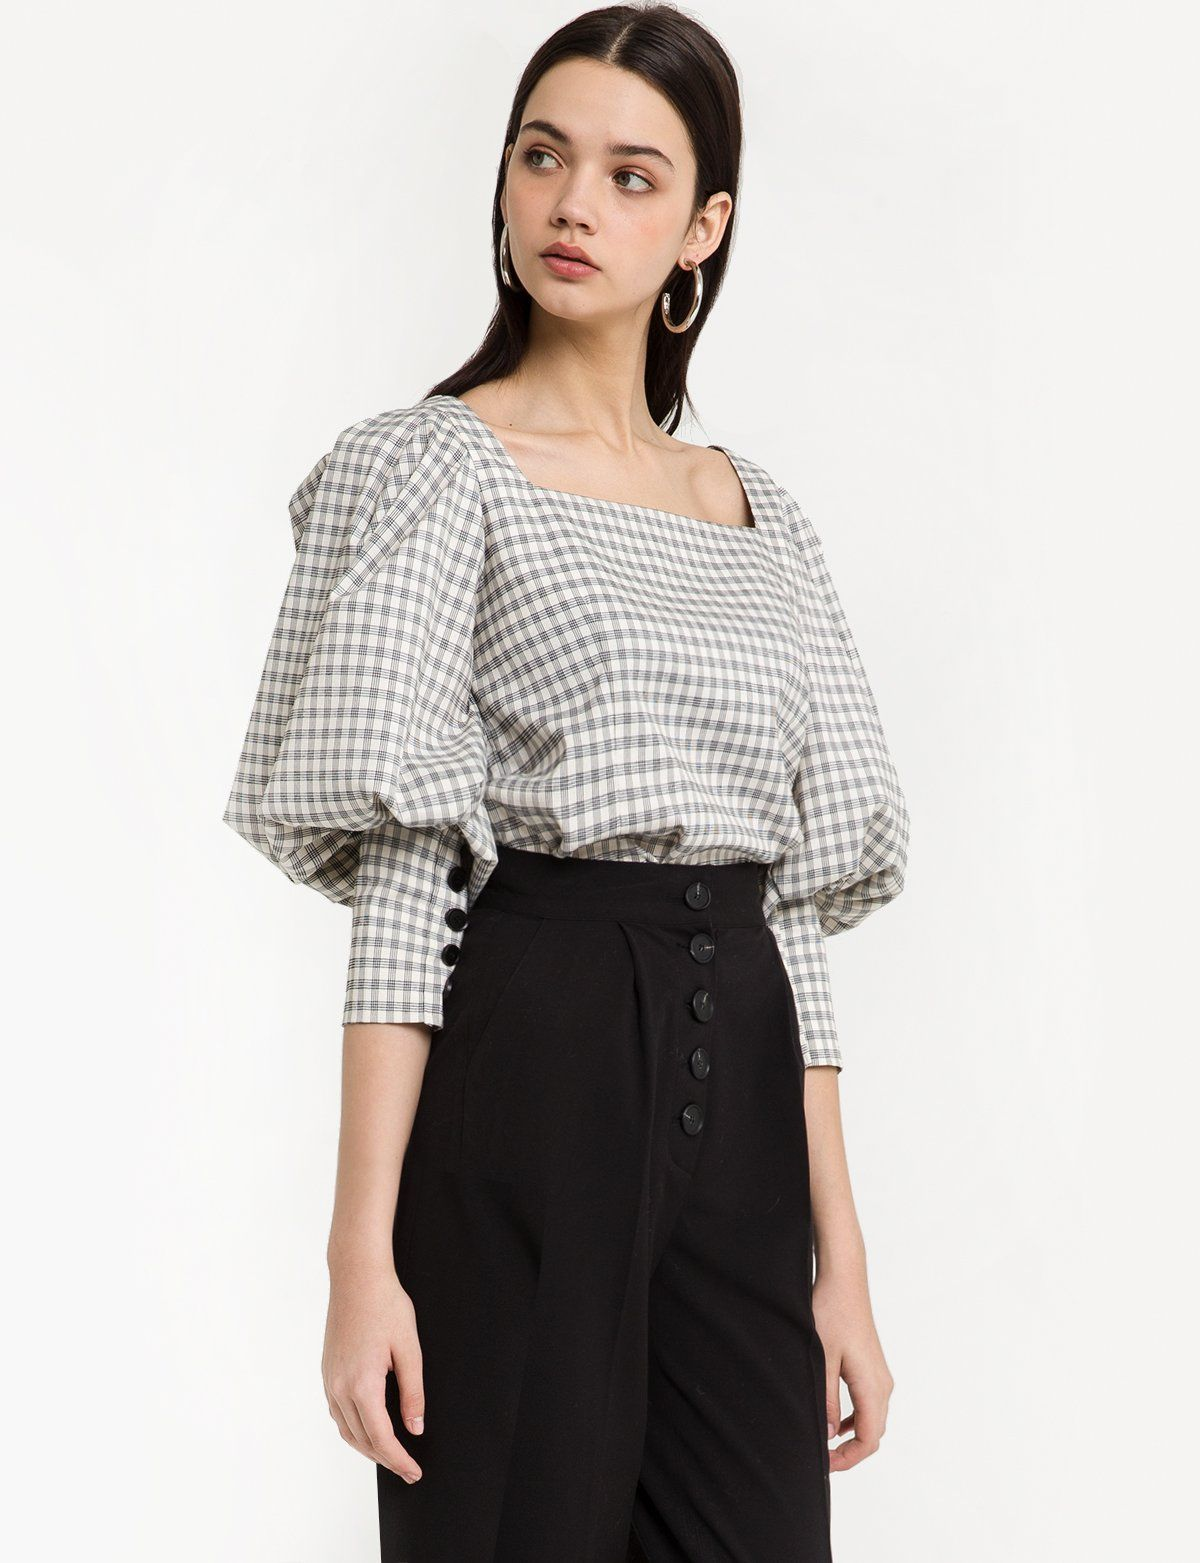 8627485eddc3b Estimated Delivery January 15 Plaid Puffy Sleeve Shirt with Gathered Button  Cuff Made by us50% cotton